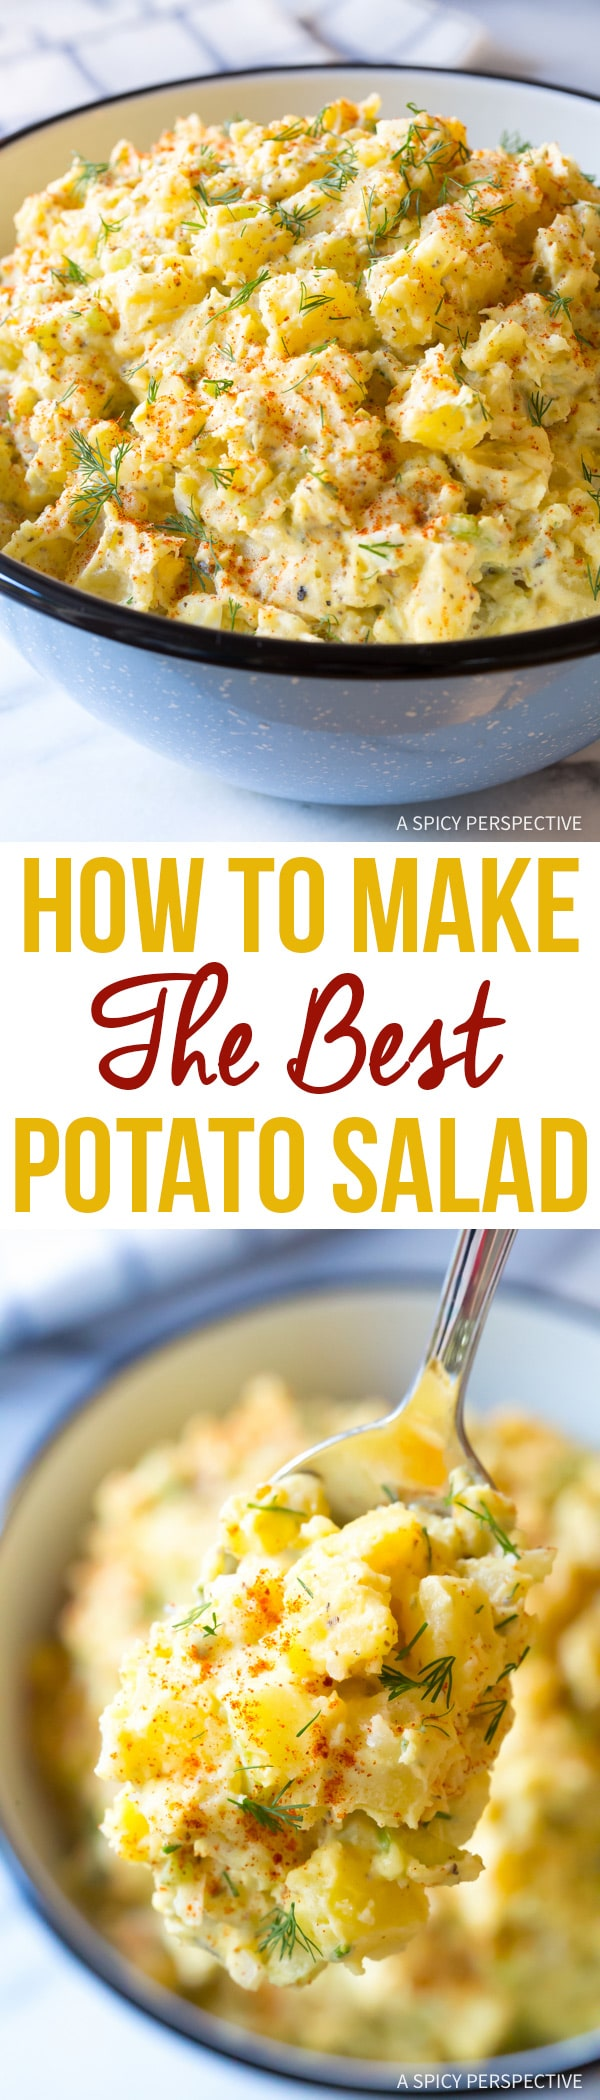 How To Make The Best Potato Salad Recipe Ever